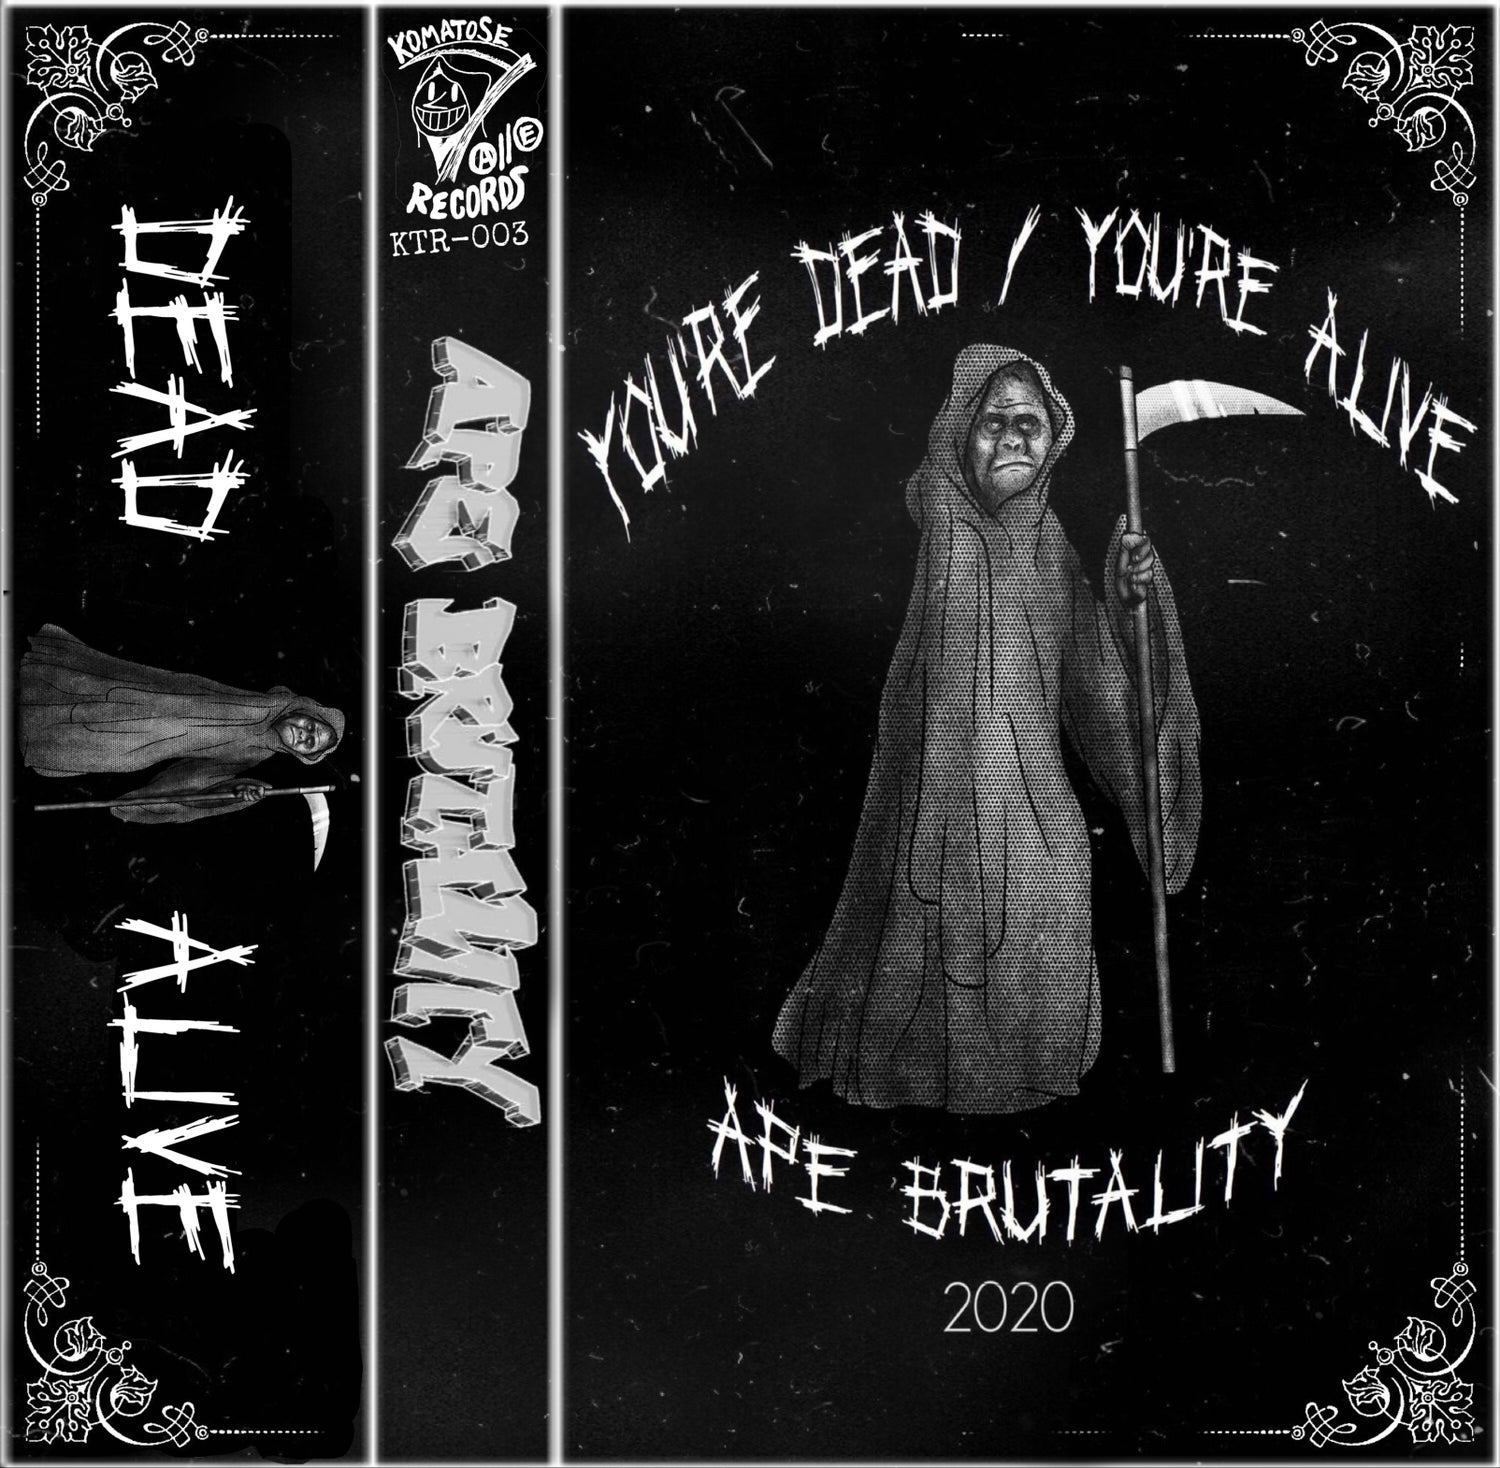 YOU'RE DEAD/YOU'RE ALIVE-APE BRUTALITY